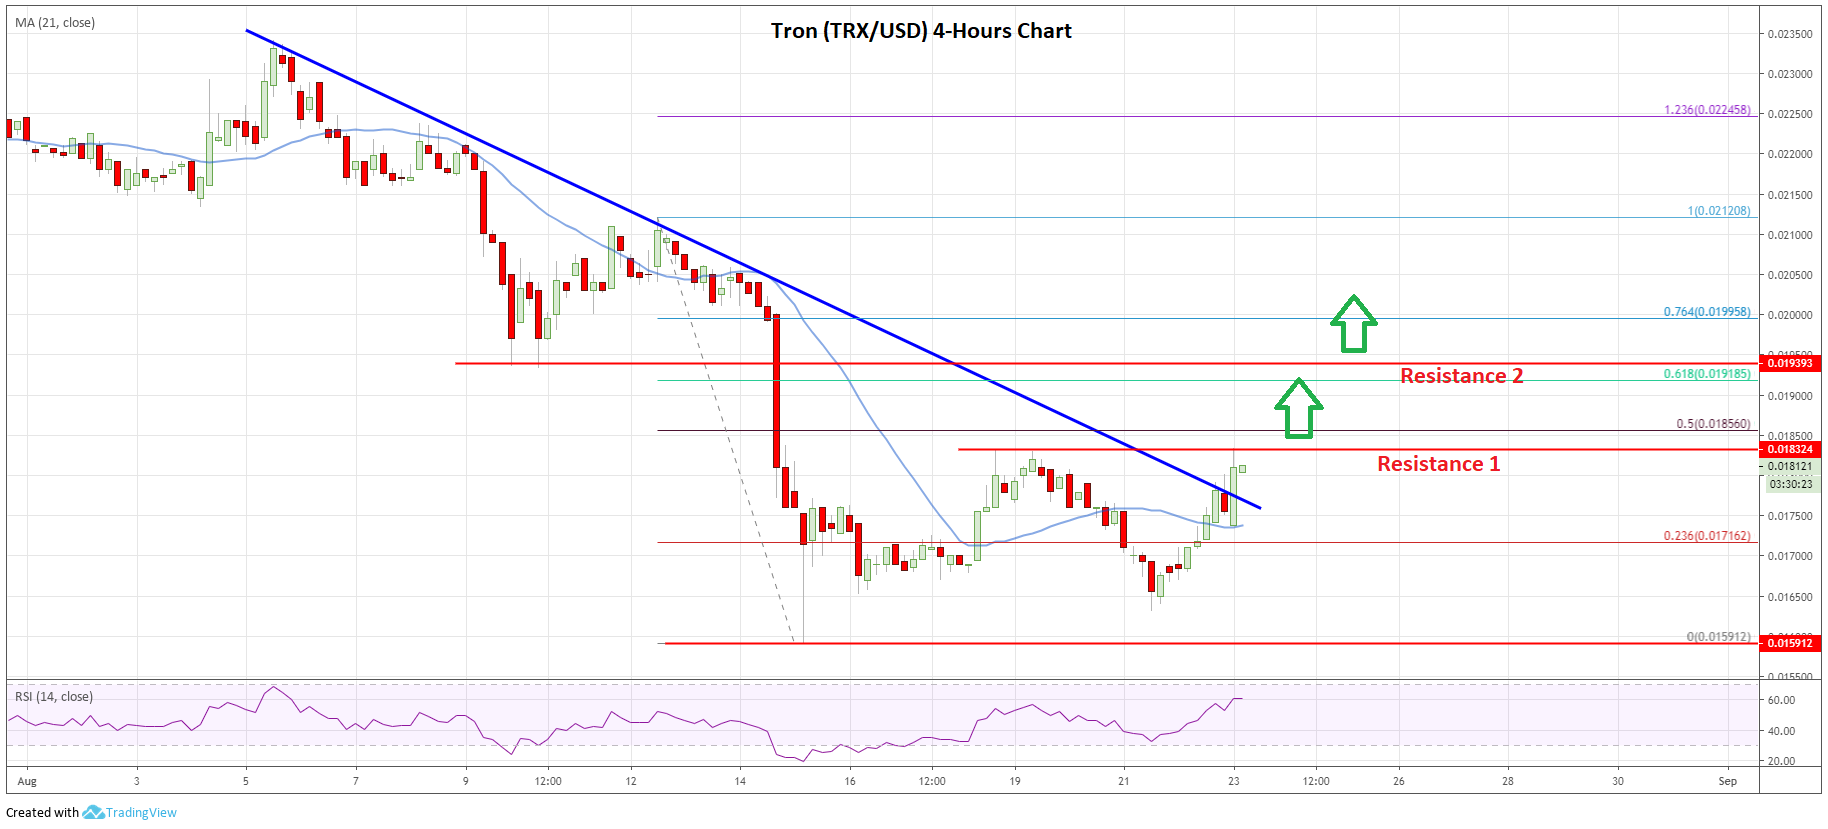 Tron Price Analysis (TRX/USD)